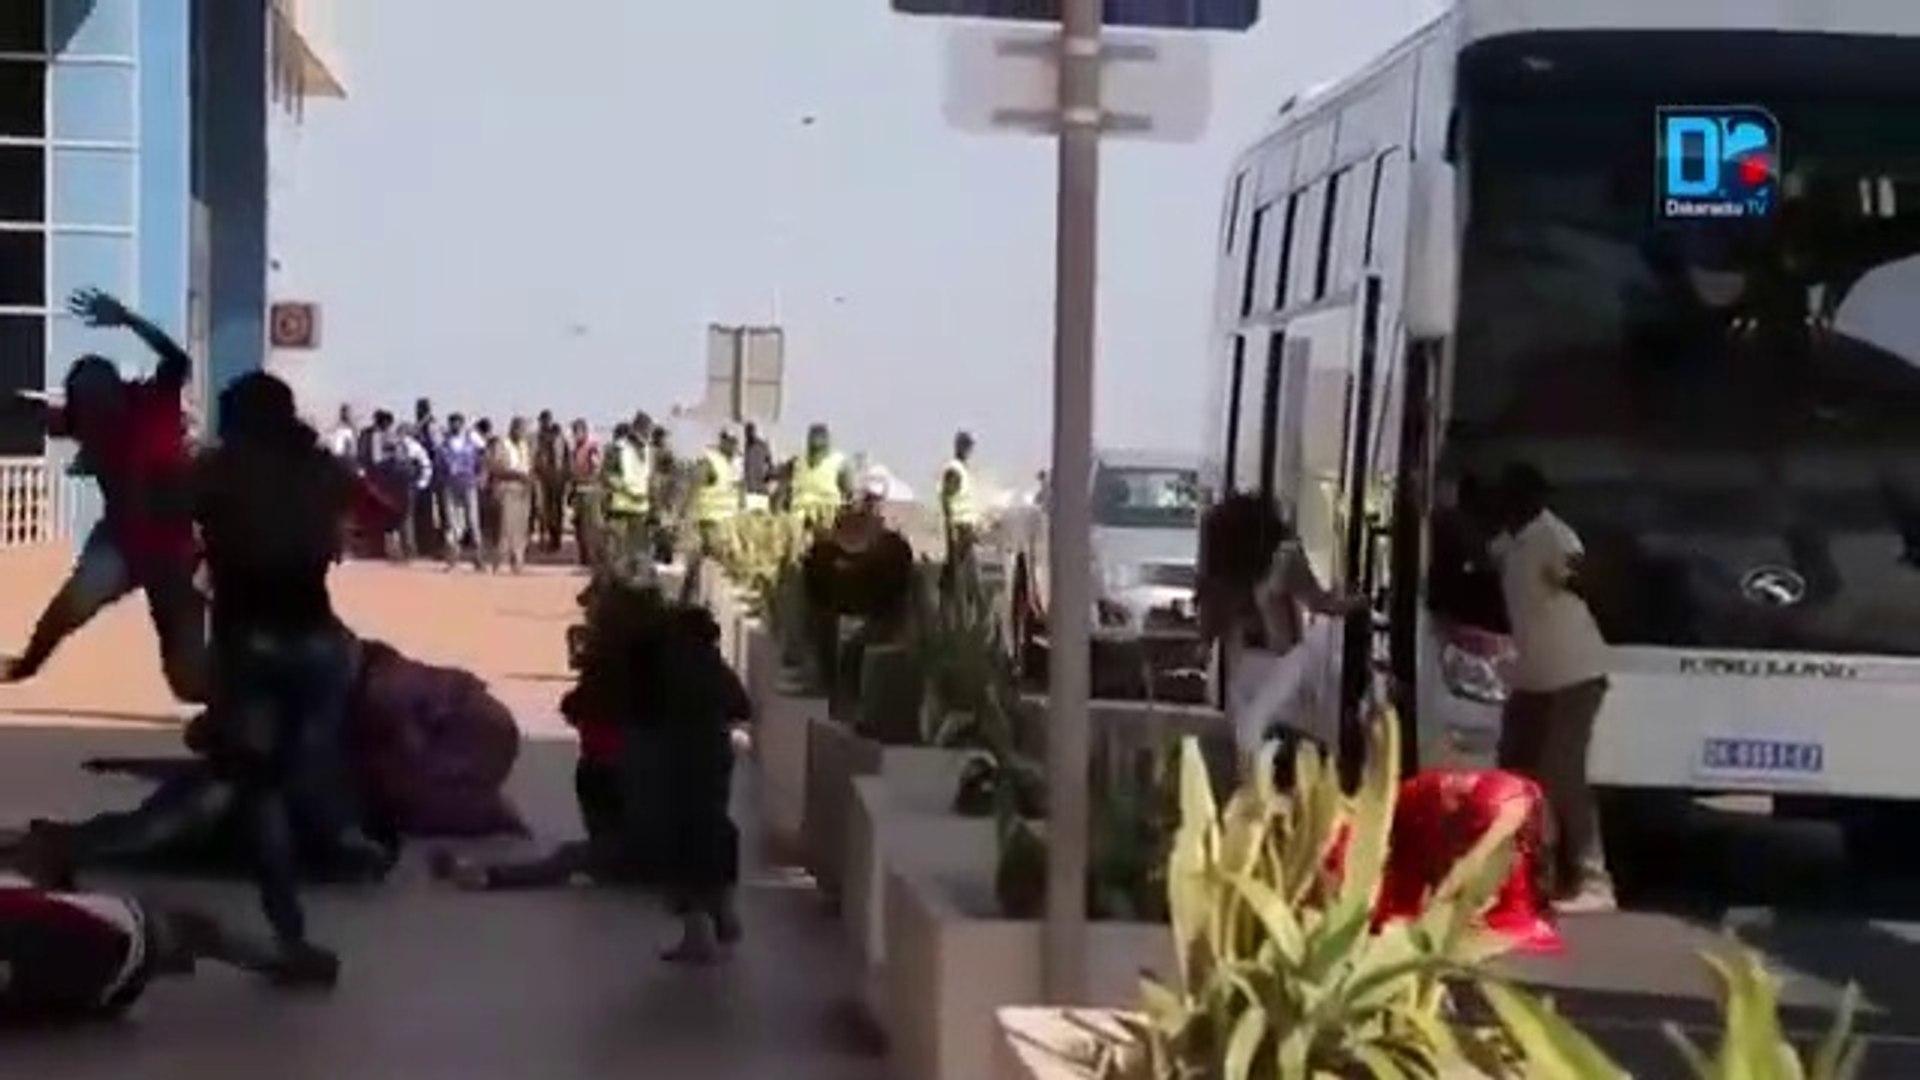 Corona Virus | People effected from corona Virus on Airport. They going to be dieing | scary moments